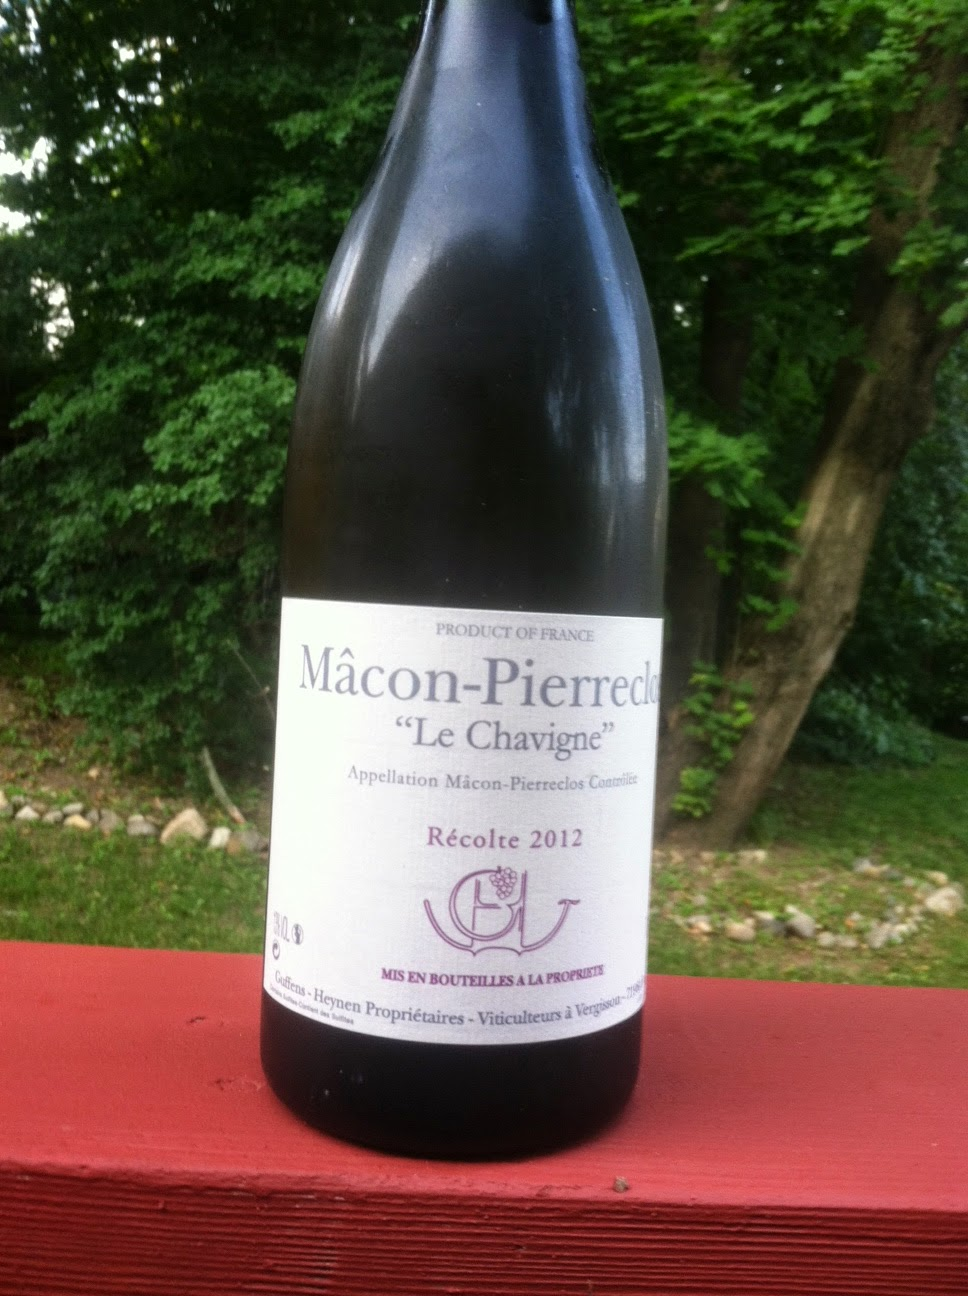 2012 Guffens-Heynen Macon-Pierreclos Le Chavigne, a very good and reasonably priced White Burgundy.